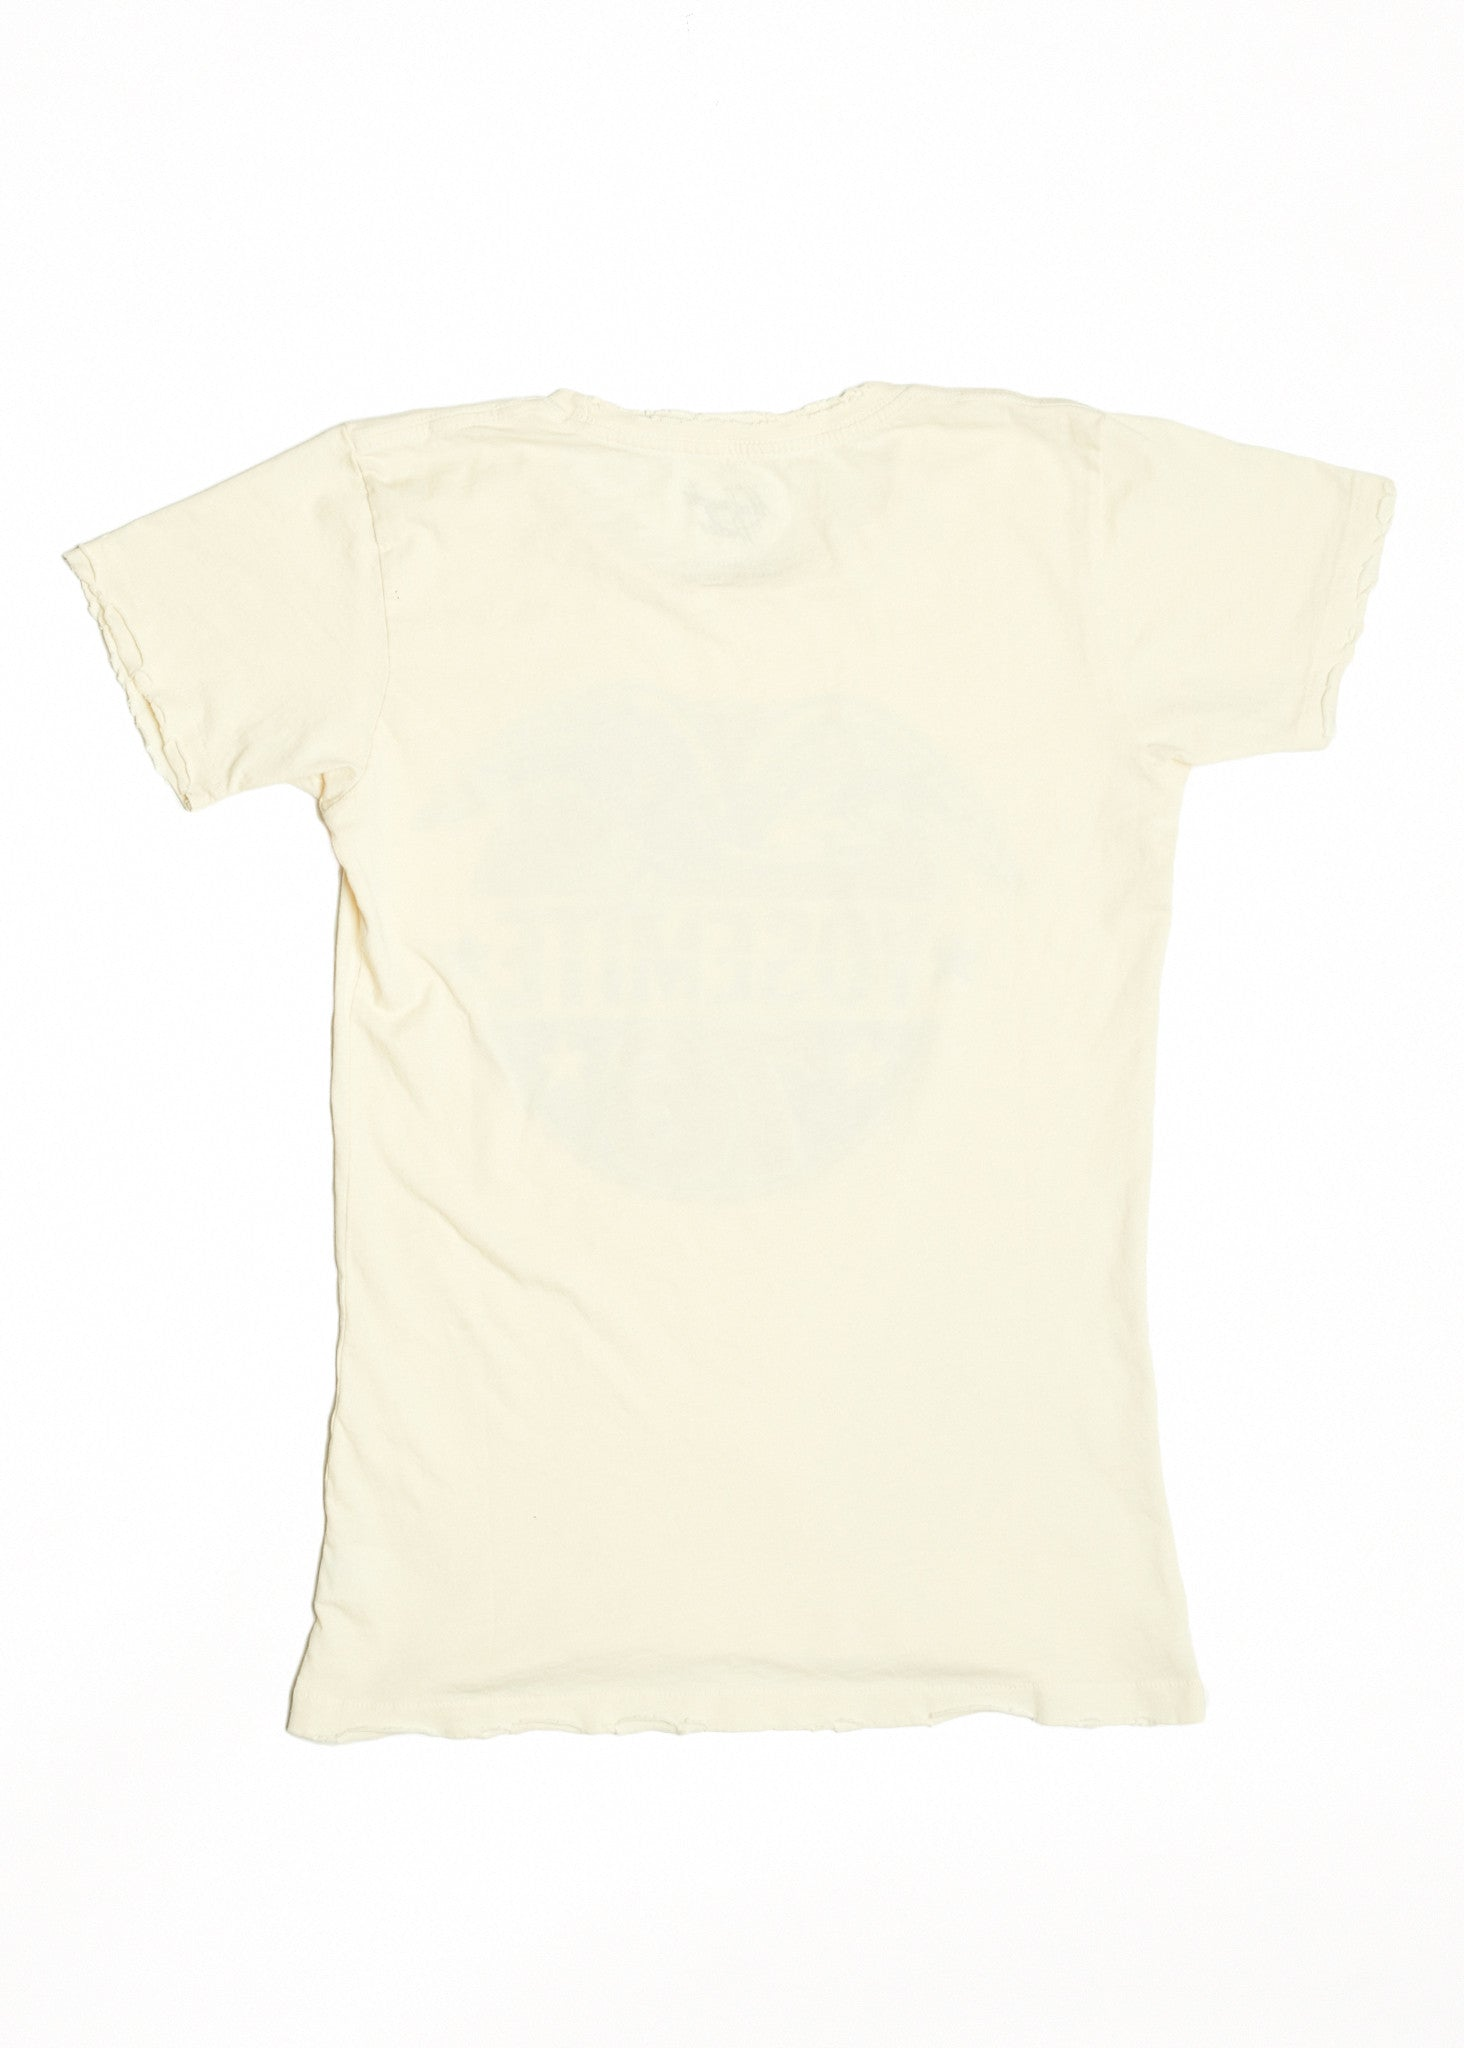 Yosemite Women's Crew - Dirty White